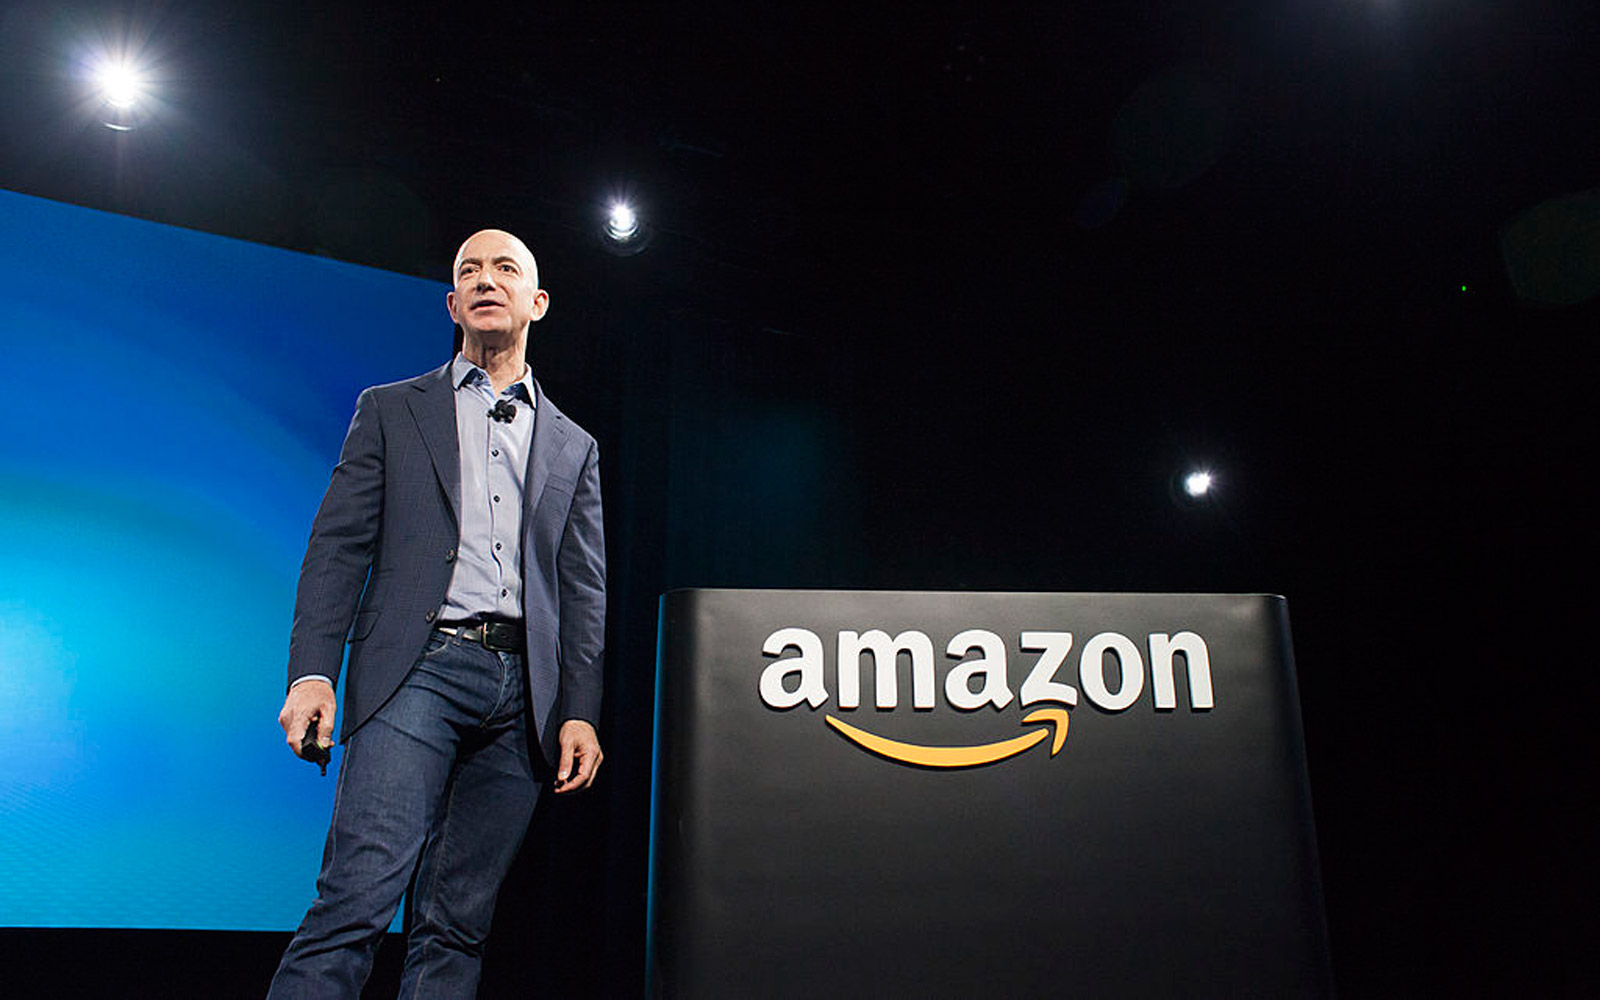 Jeff Bezos Was the Richest Person in the World for a Few Hours...